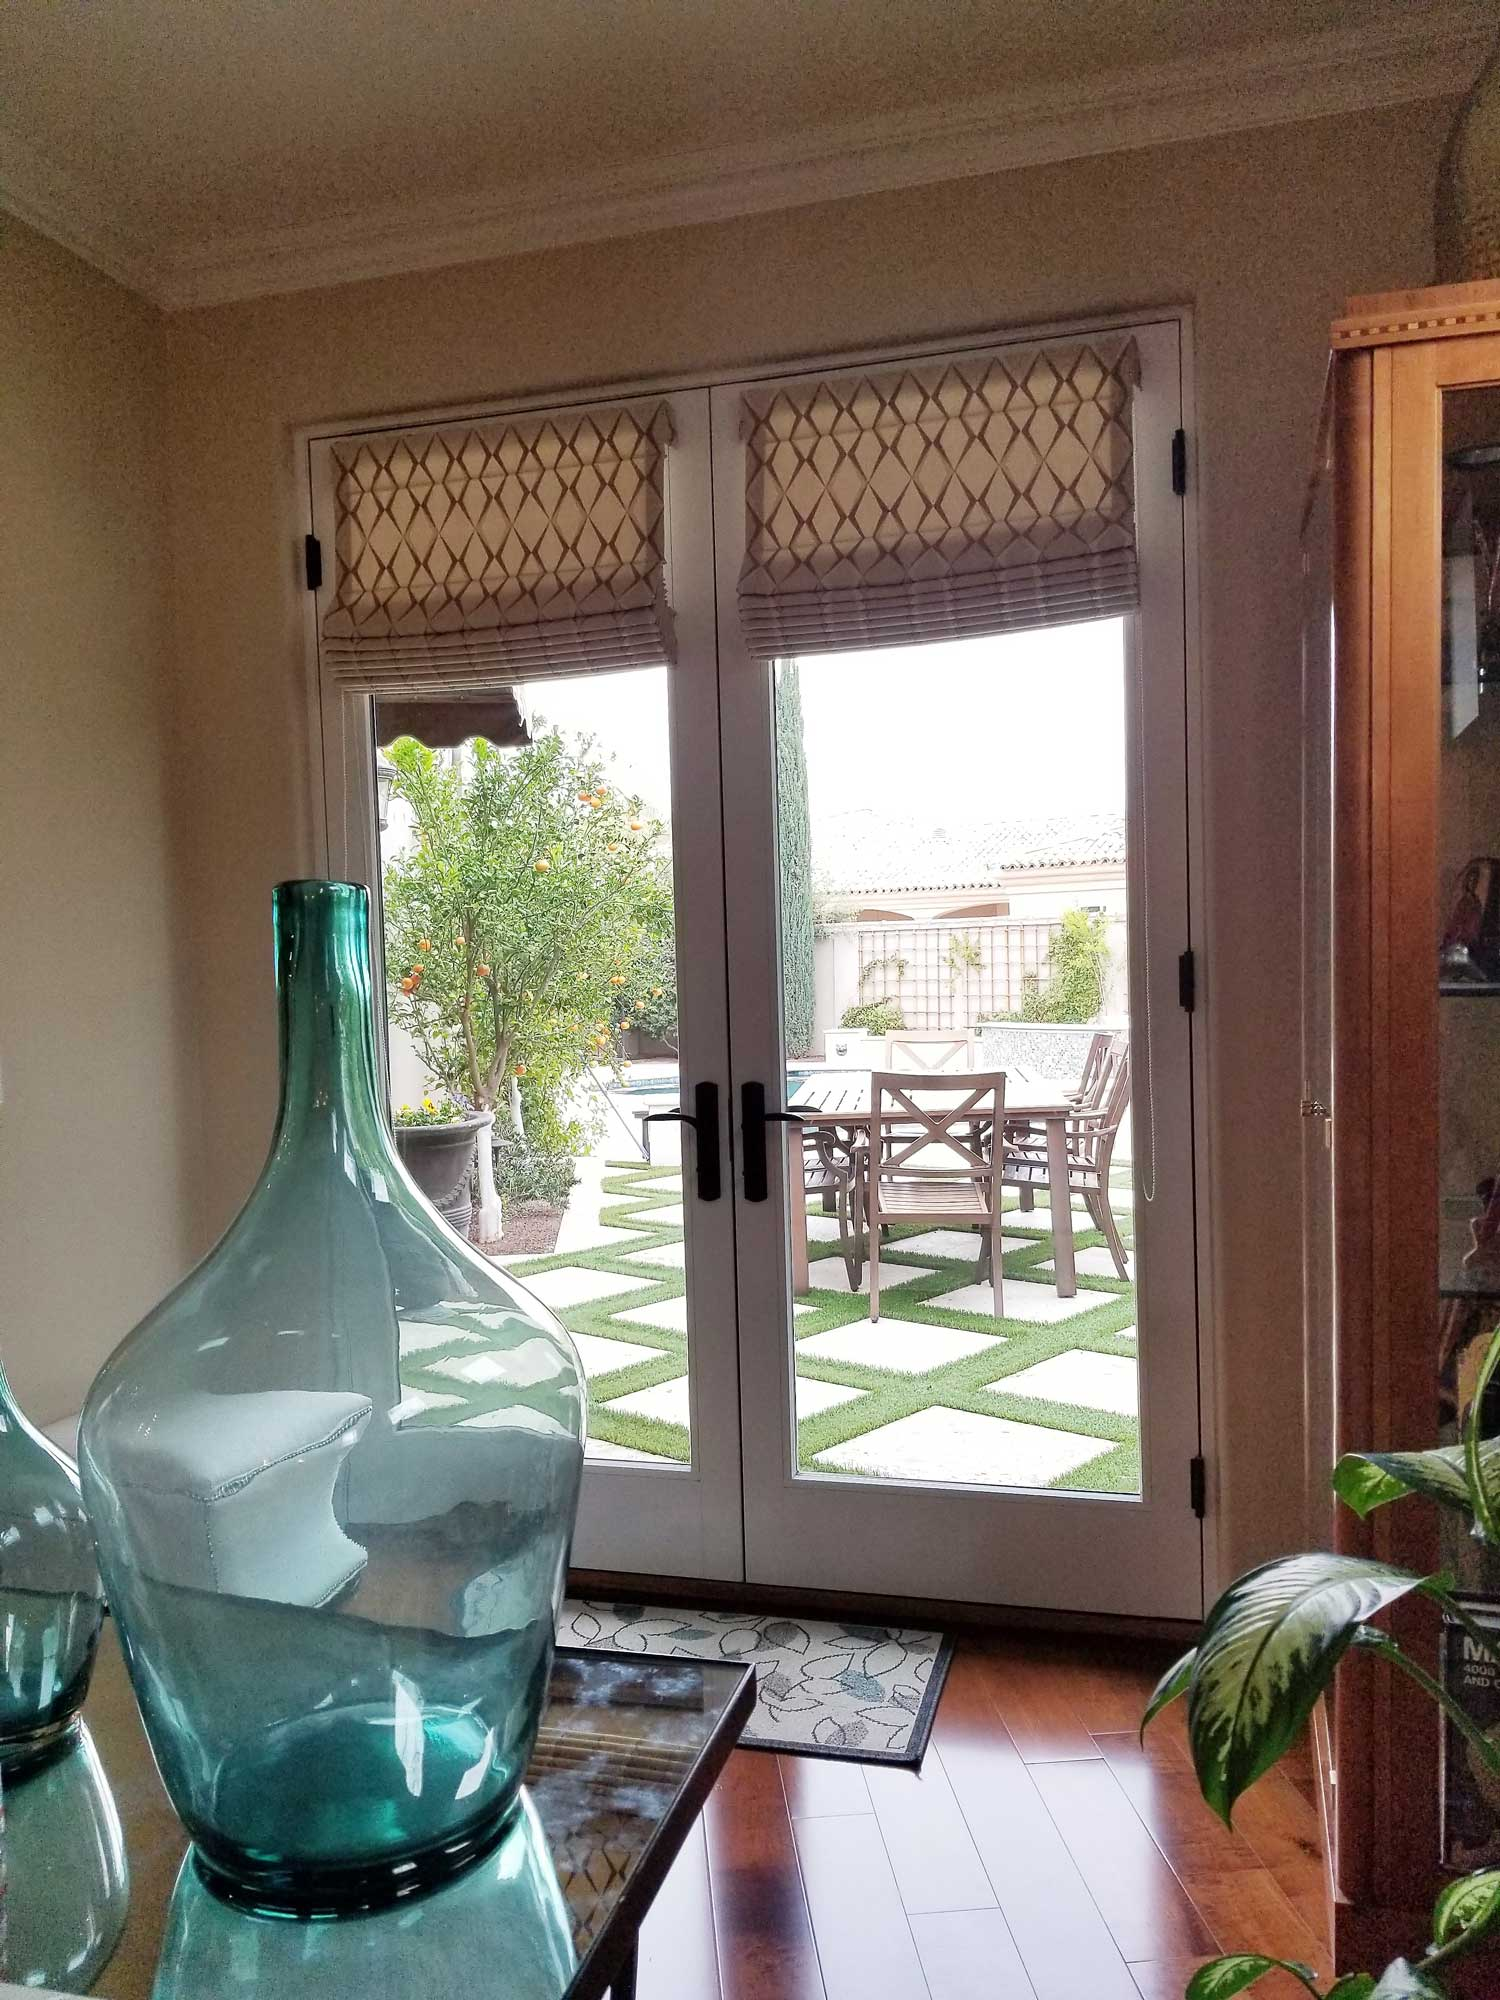 window from living space opening into a patio with dining table and chairs